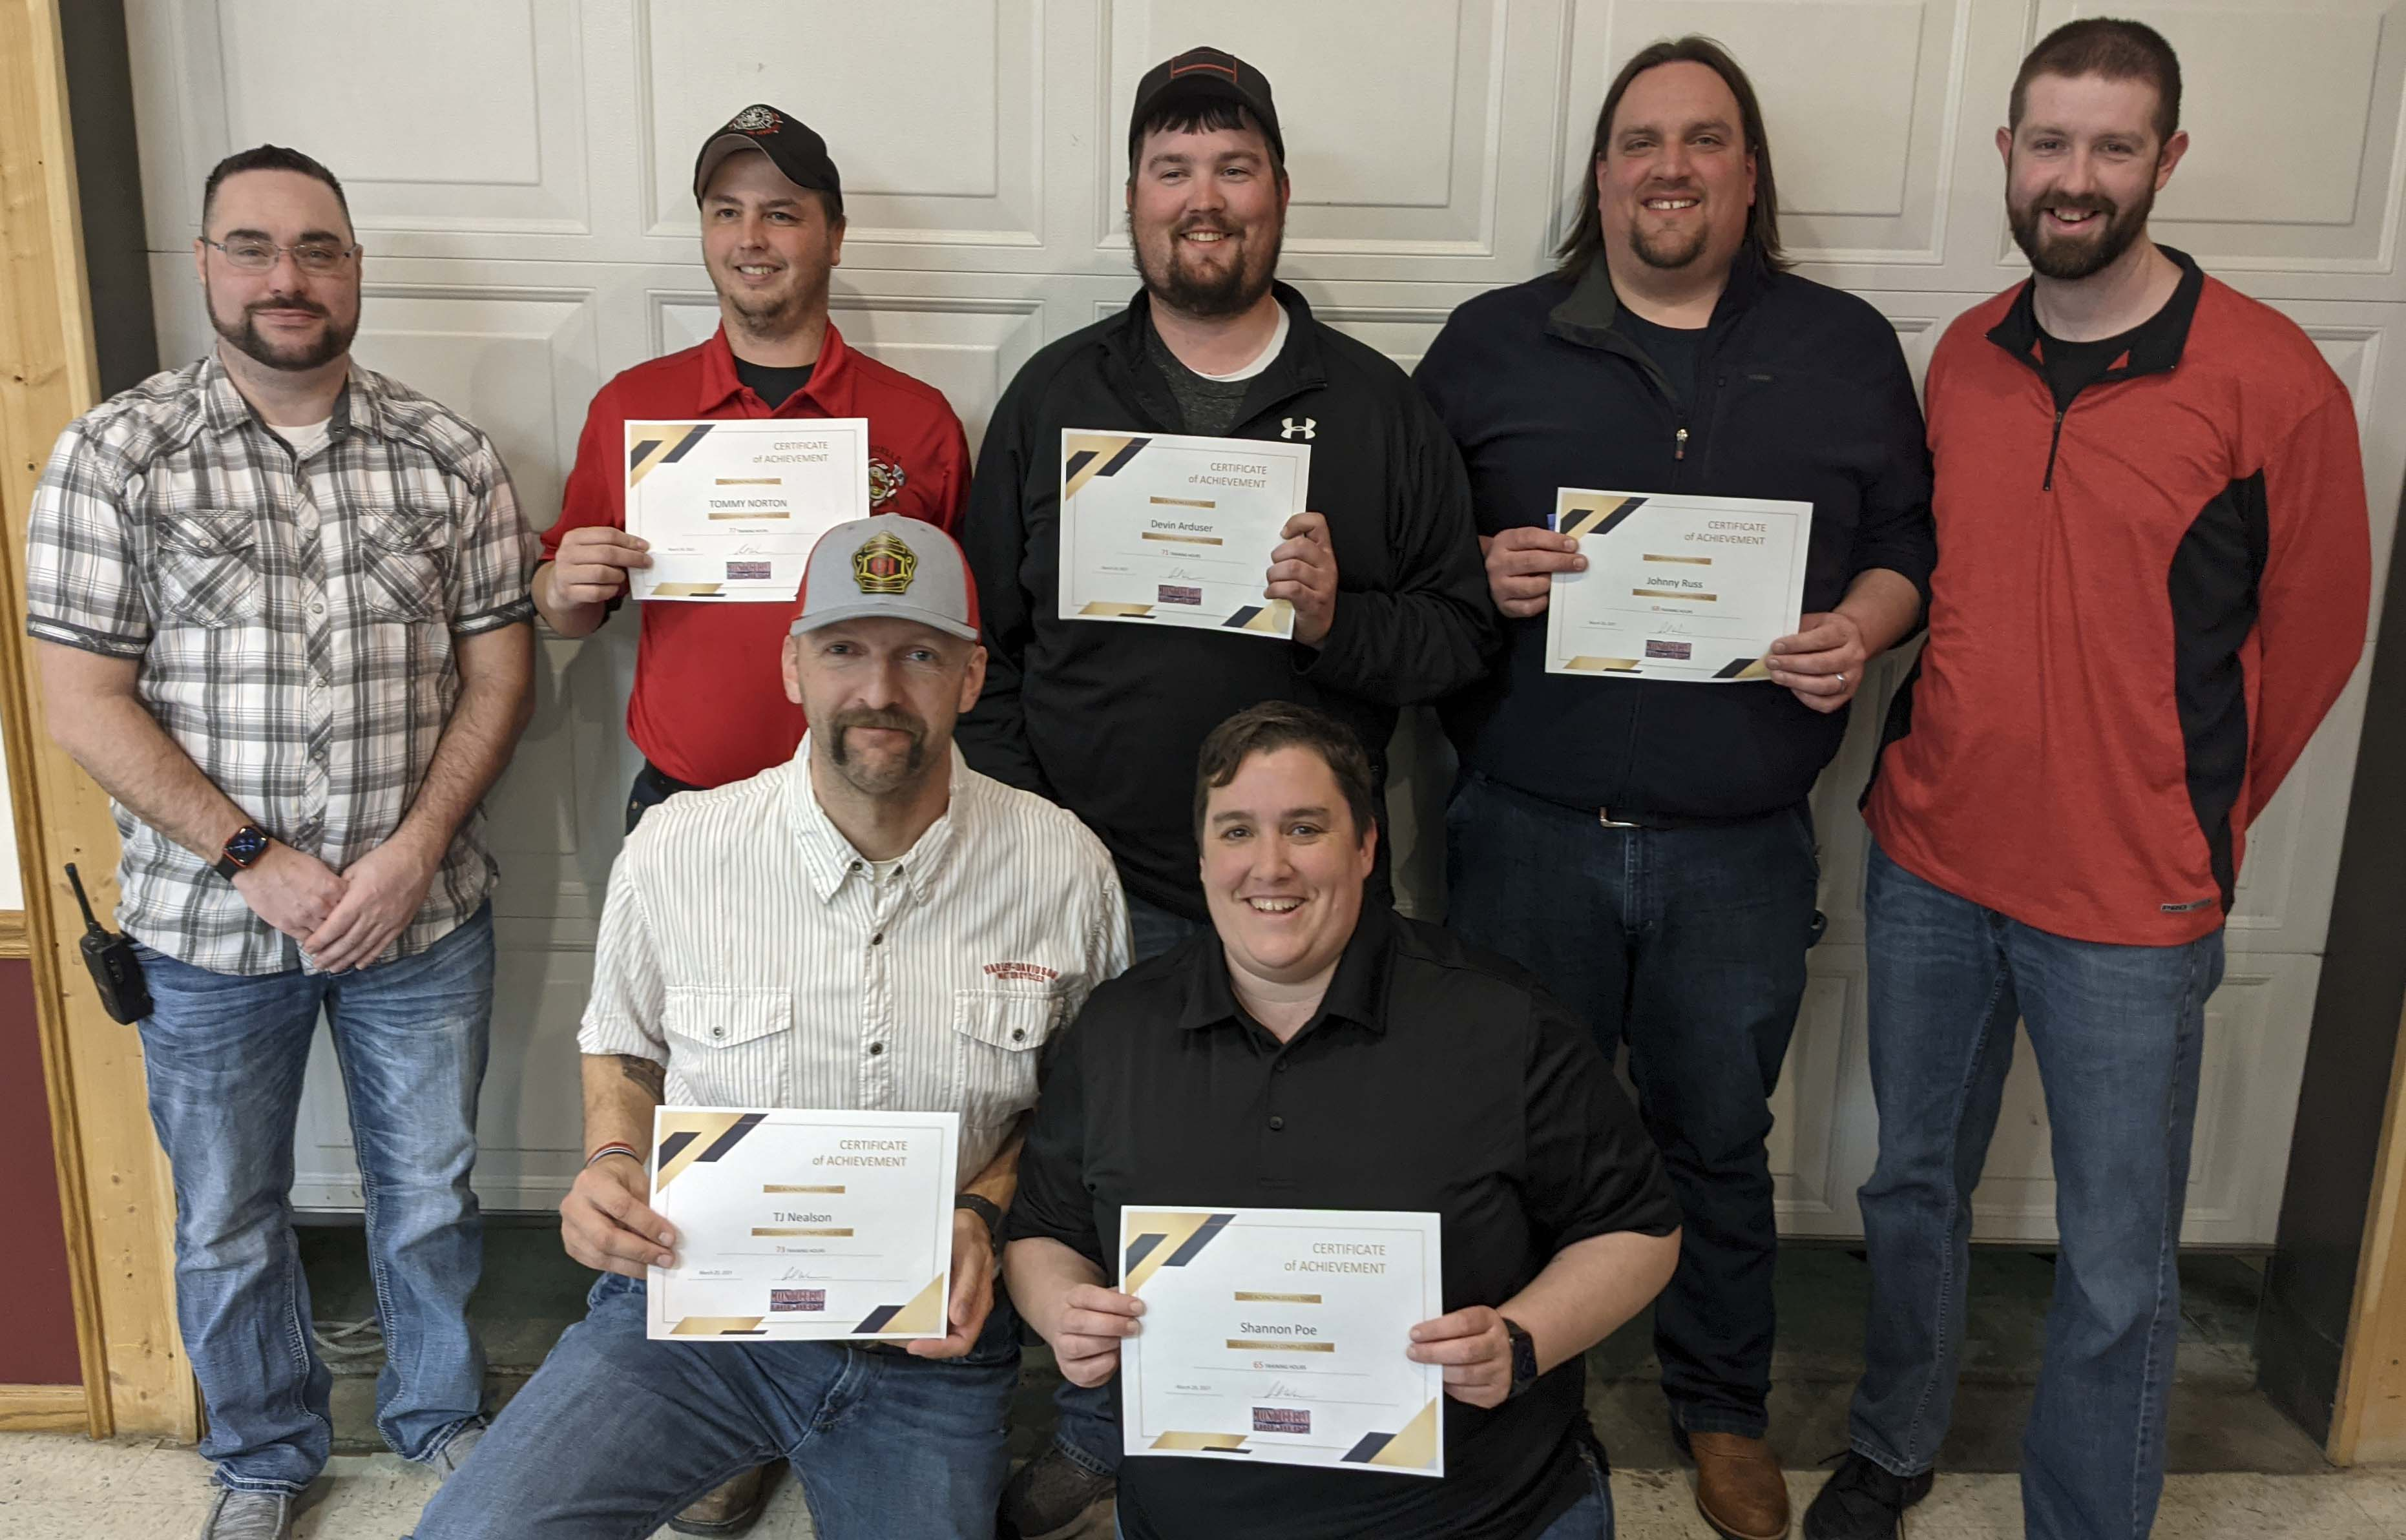 Several MFD members were recognized for their training efforts. Kneeling in front are TJ Nealson and Shannon Poe. Standing are Training Officer Paul Warner, Tommy Norton, Devin Arduser, Johnny Russ, and Assistant Training Officer David Husmann.